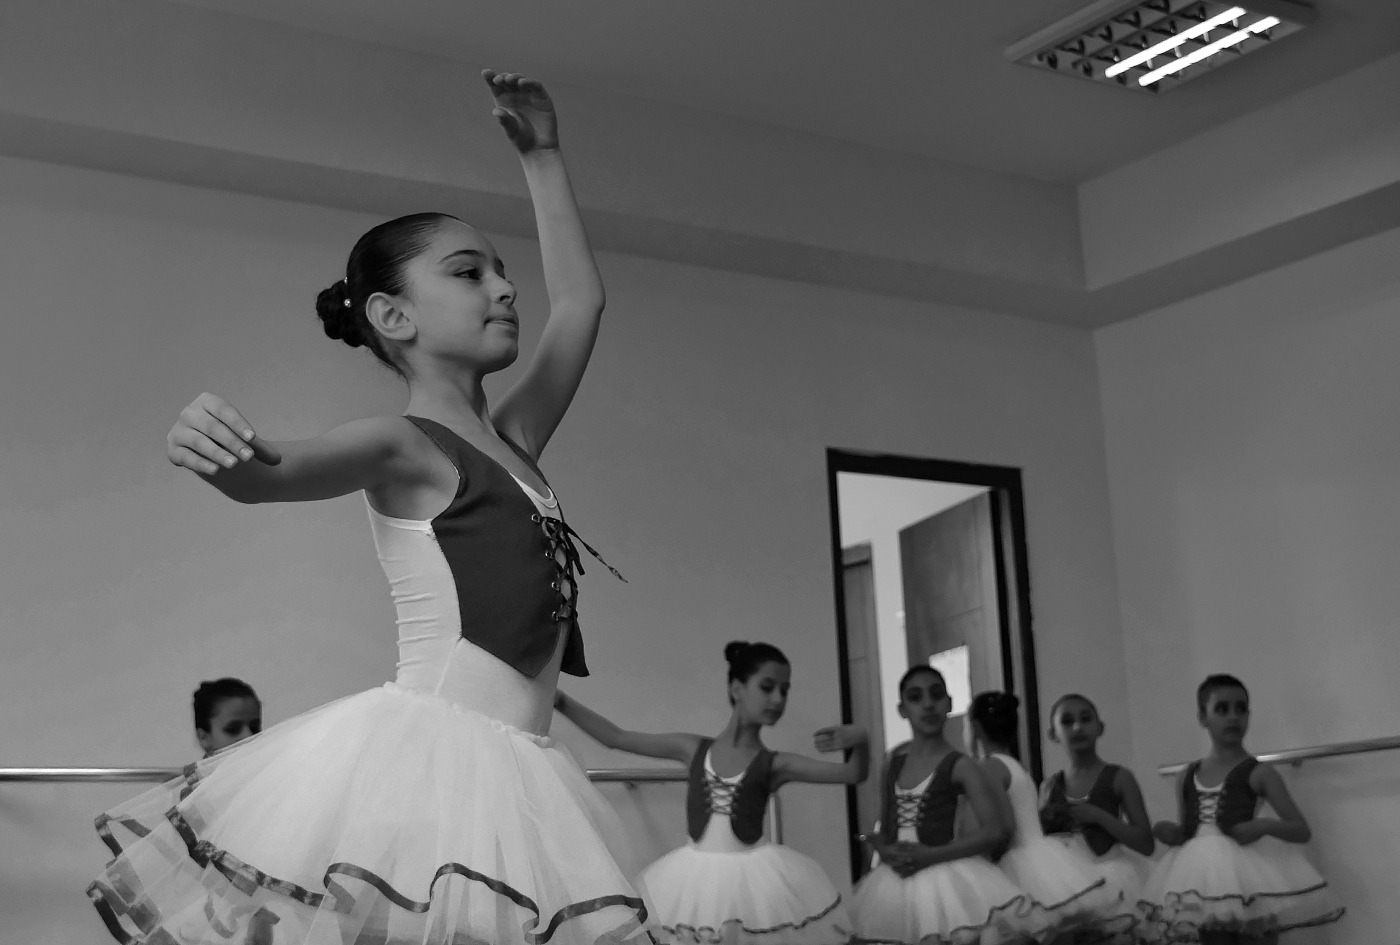 DSC 1343 - Photostory from Gyumri's Ballet School